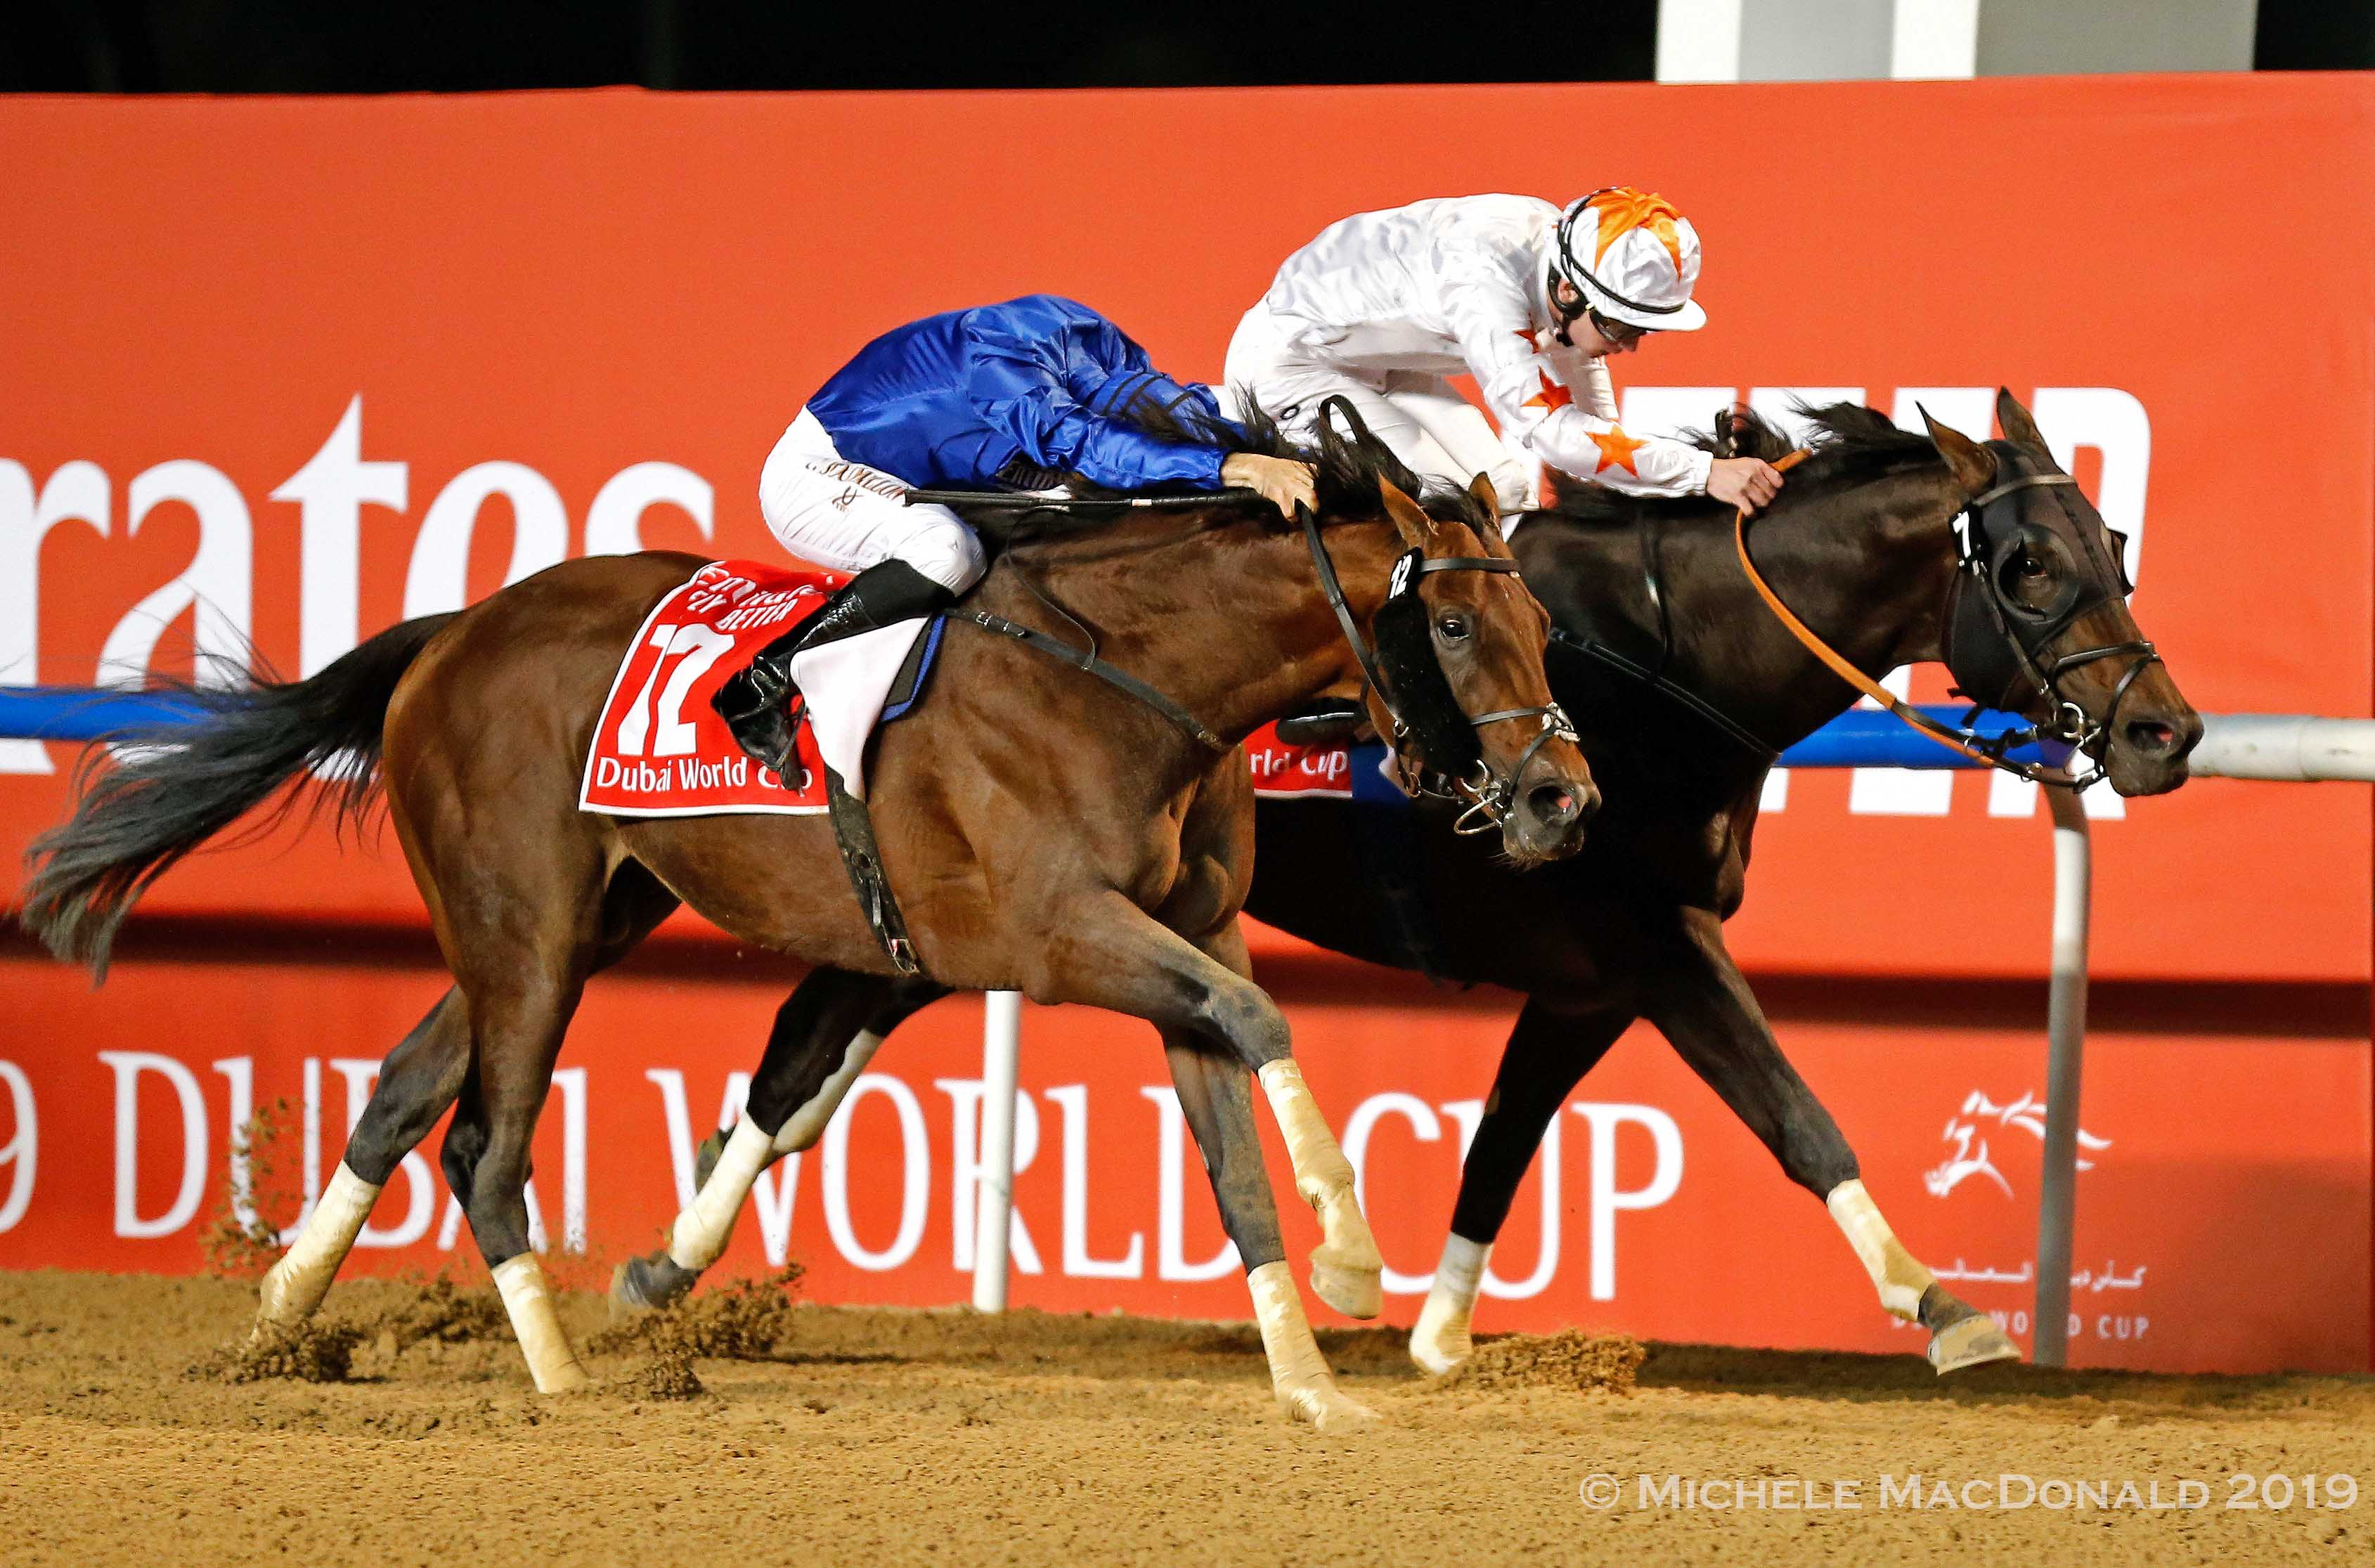 Never say die: Thunder Snow (near) refuses to yield to Gronkowski (Oisin Murphy) as they race to the wire in the Dubai World Cup. Photo: Michele MacDonald